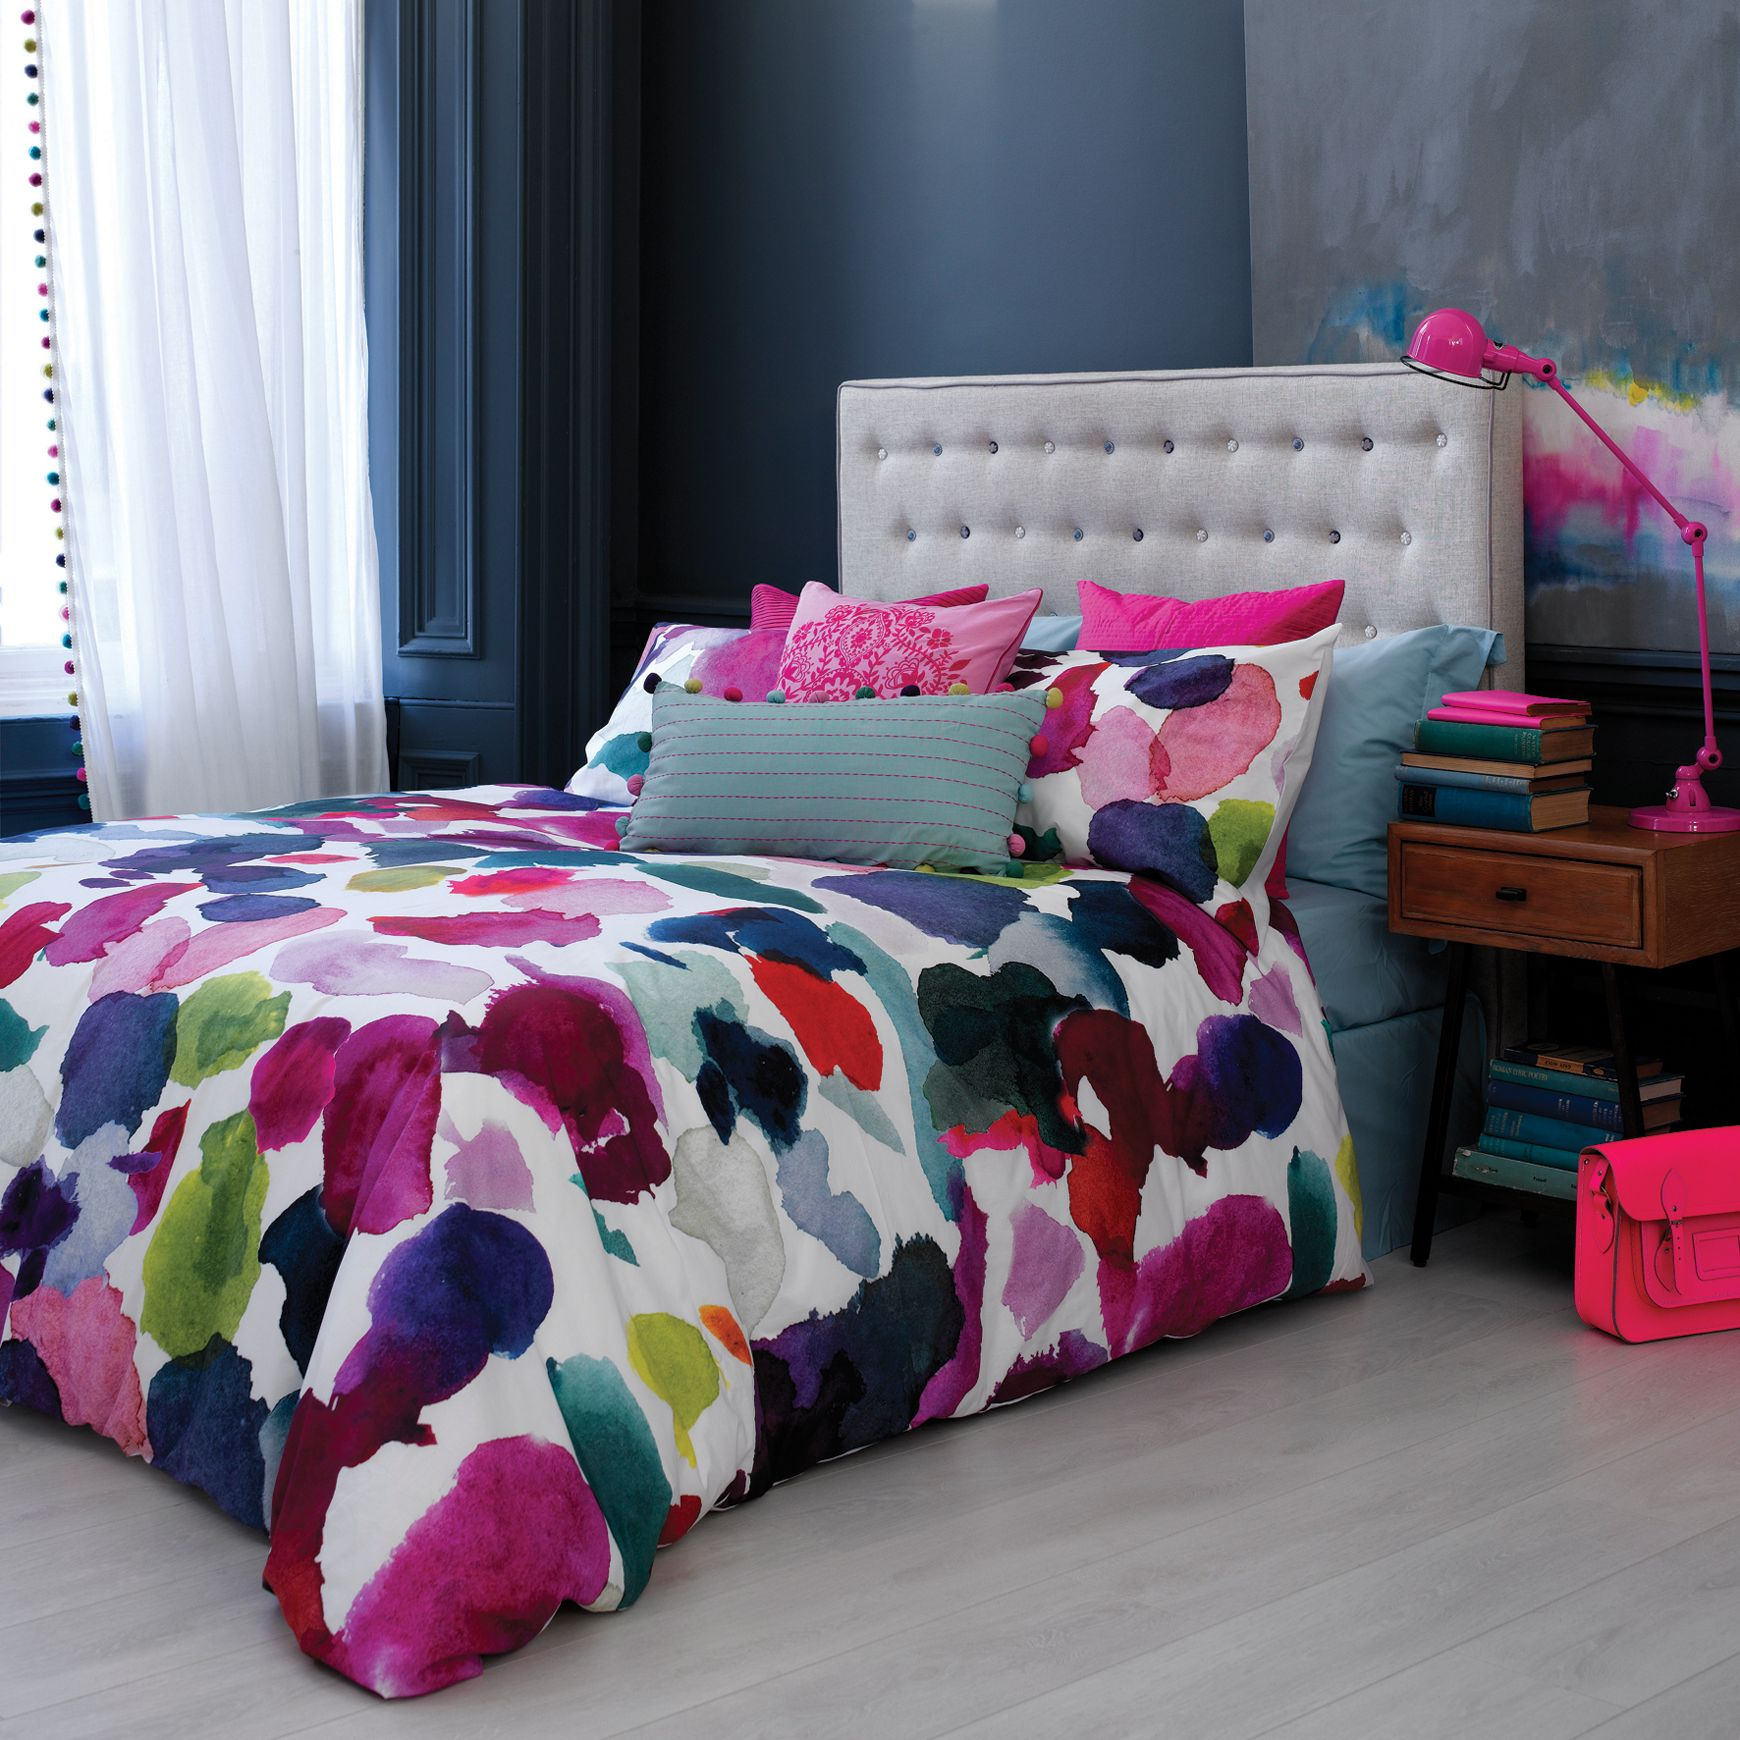 bluebellgray bluebellgray Abstract Bedding